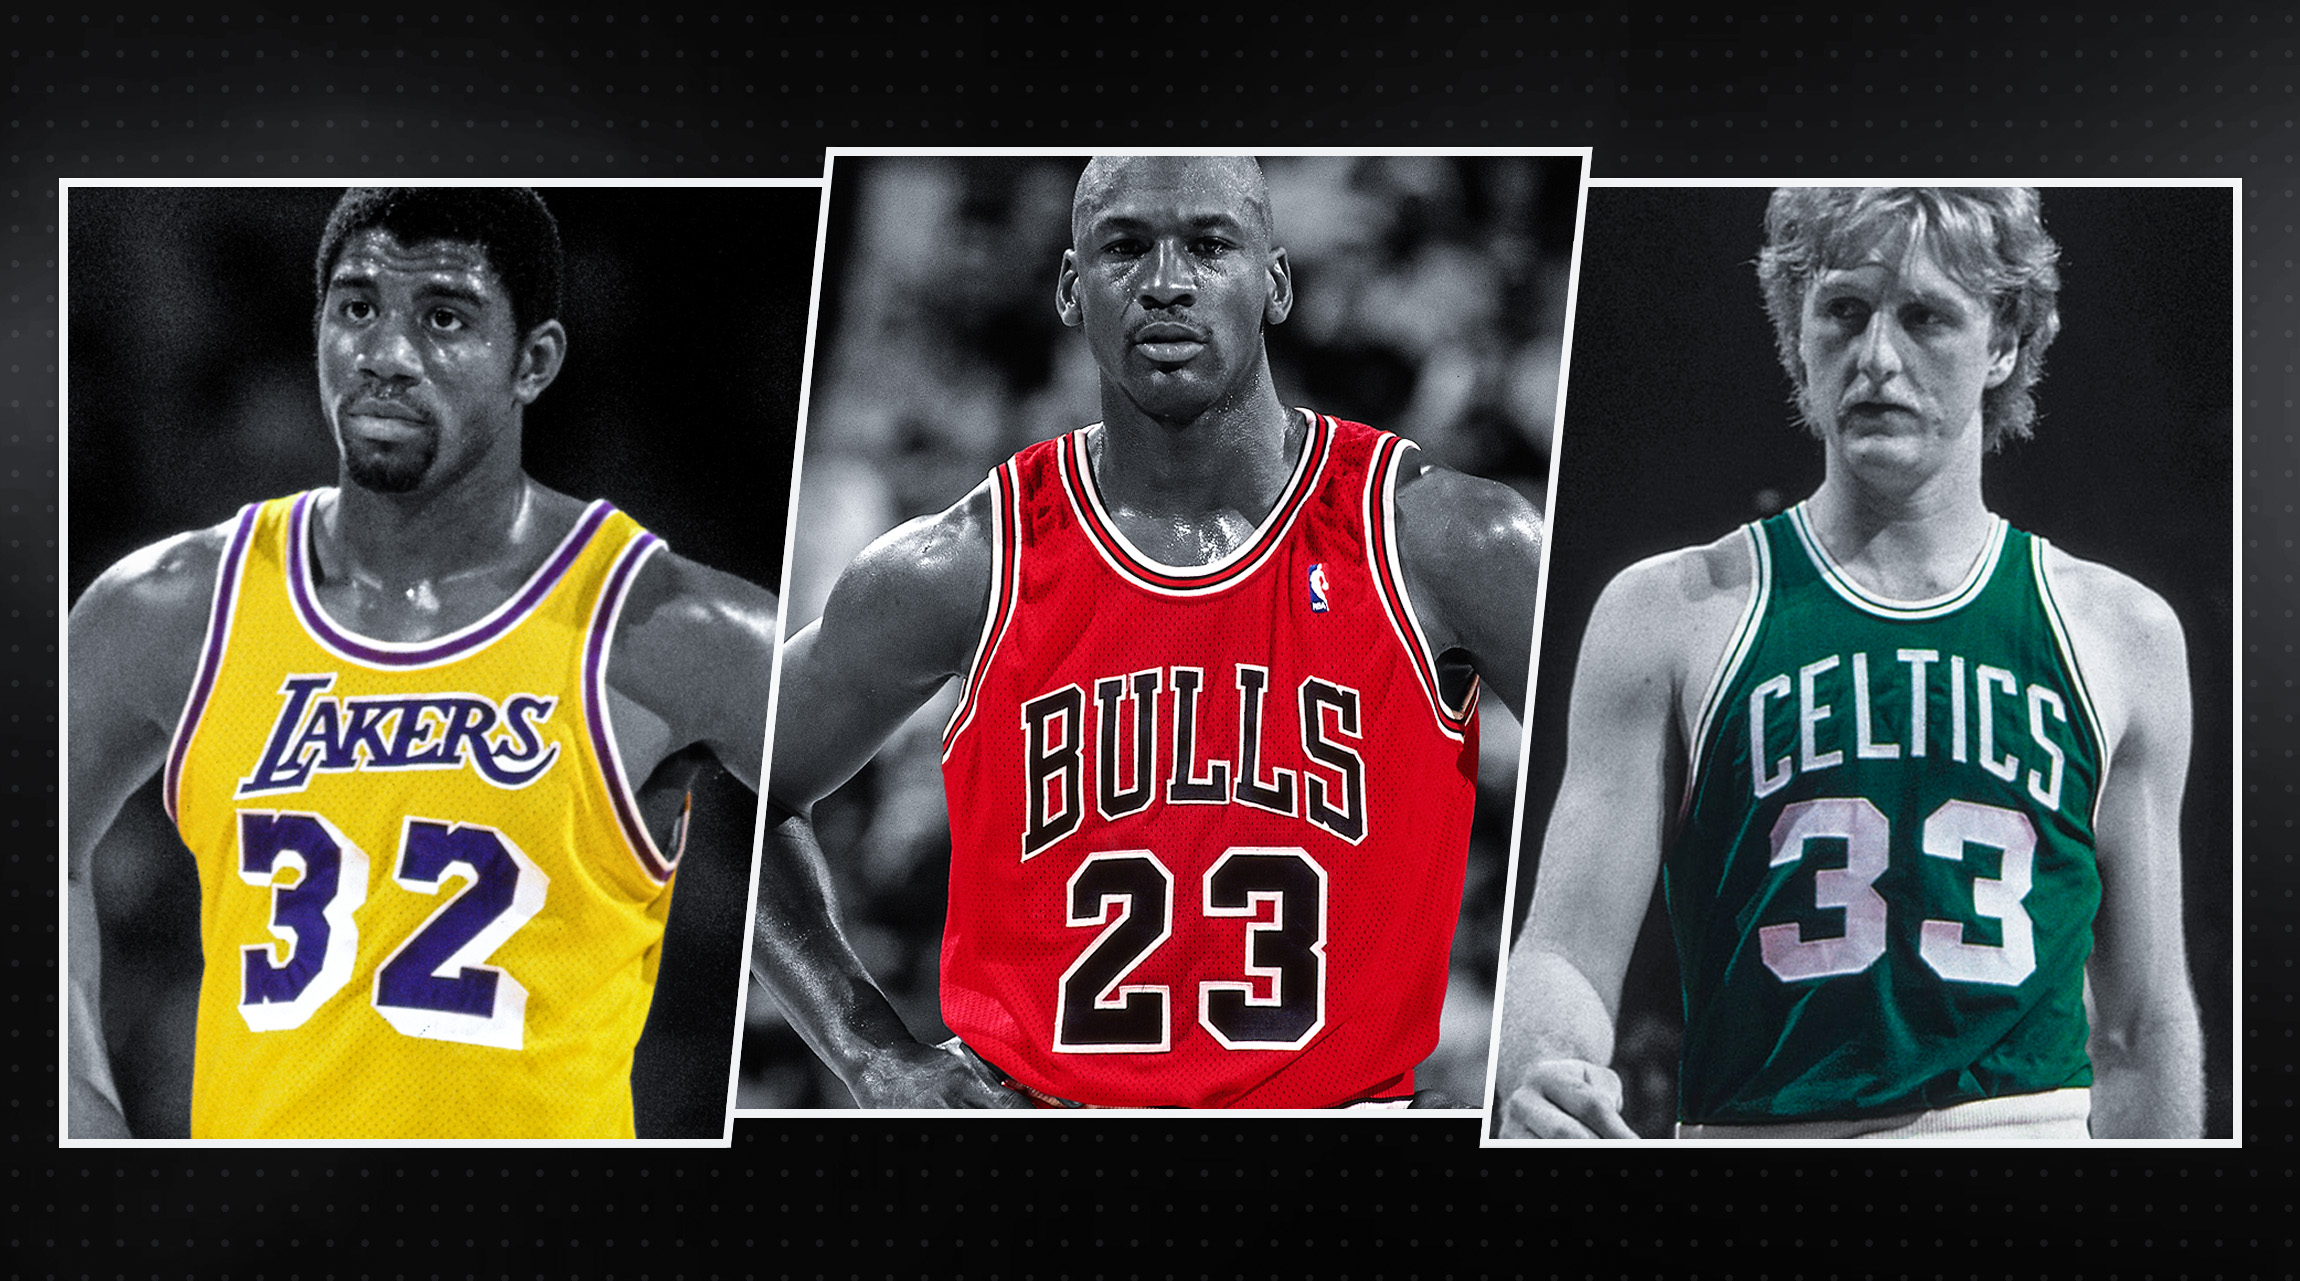 promo code 5af1a 88dc3 NBA jerseys: Ranking the 30 greatest in history | SI.com